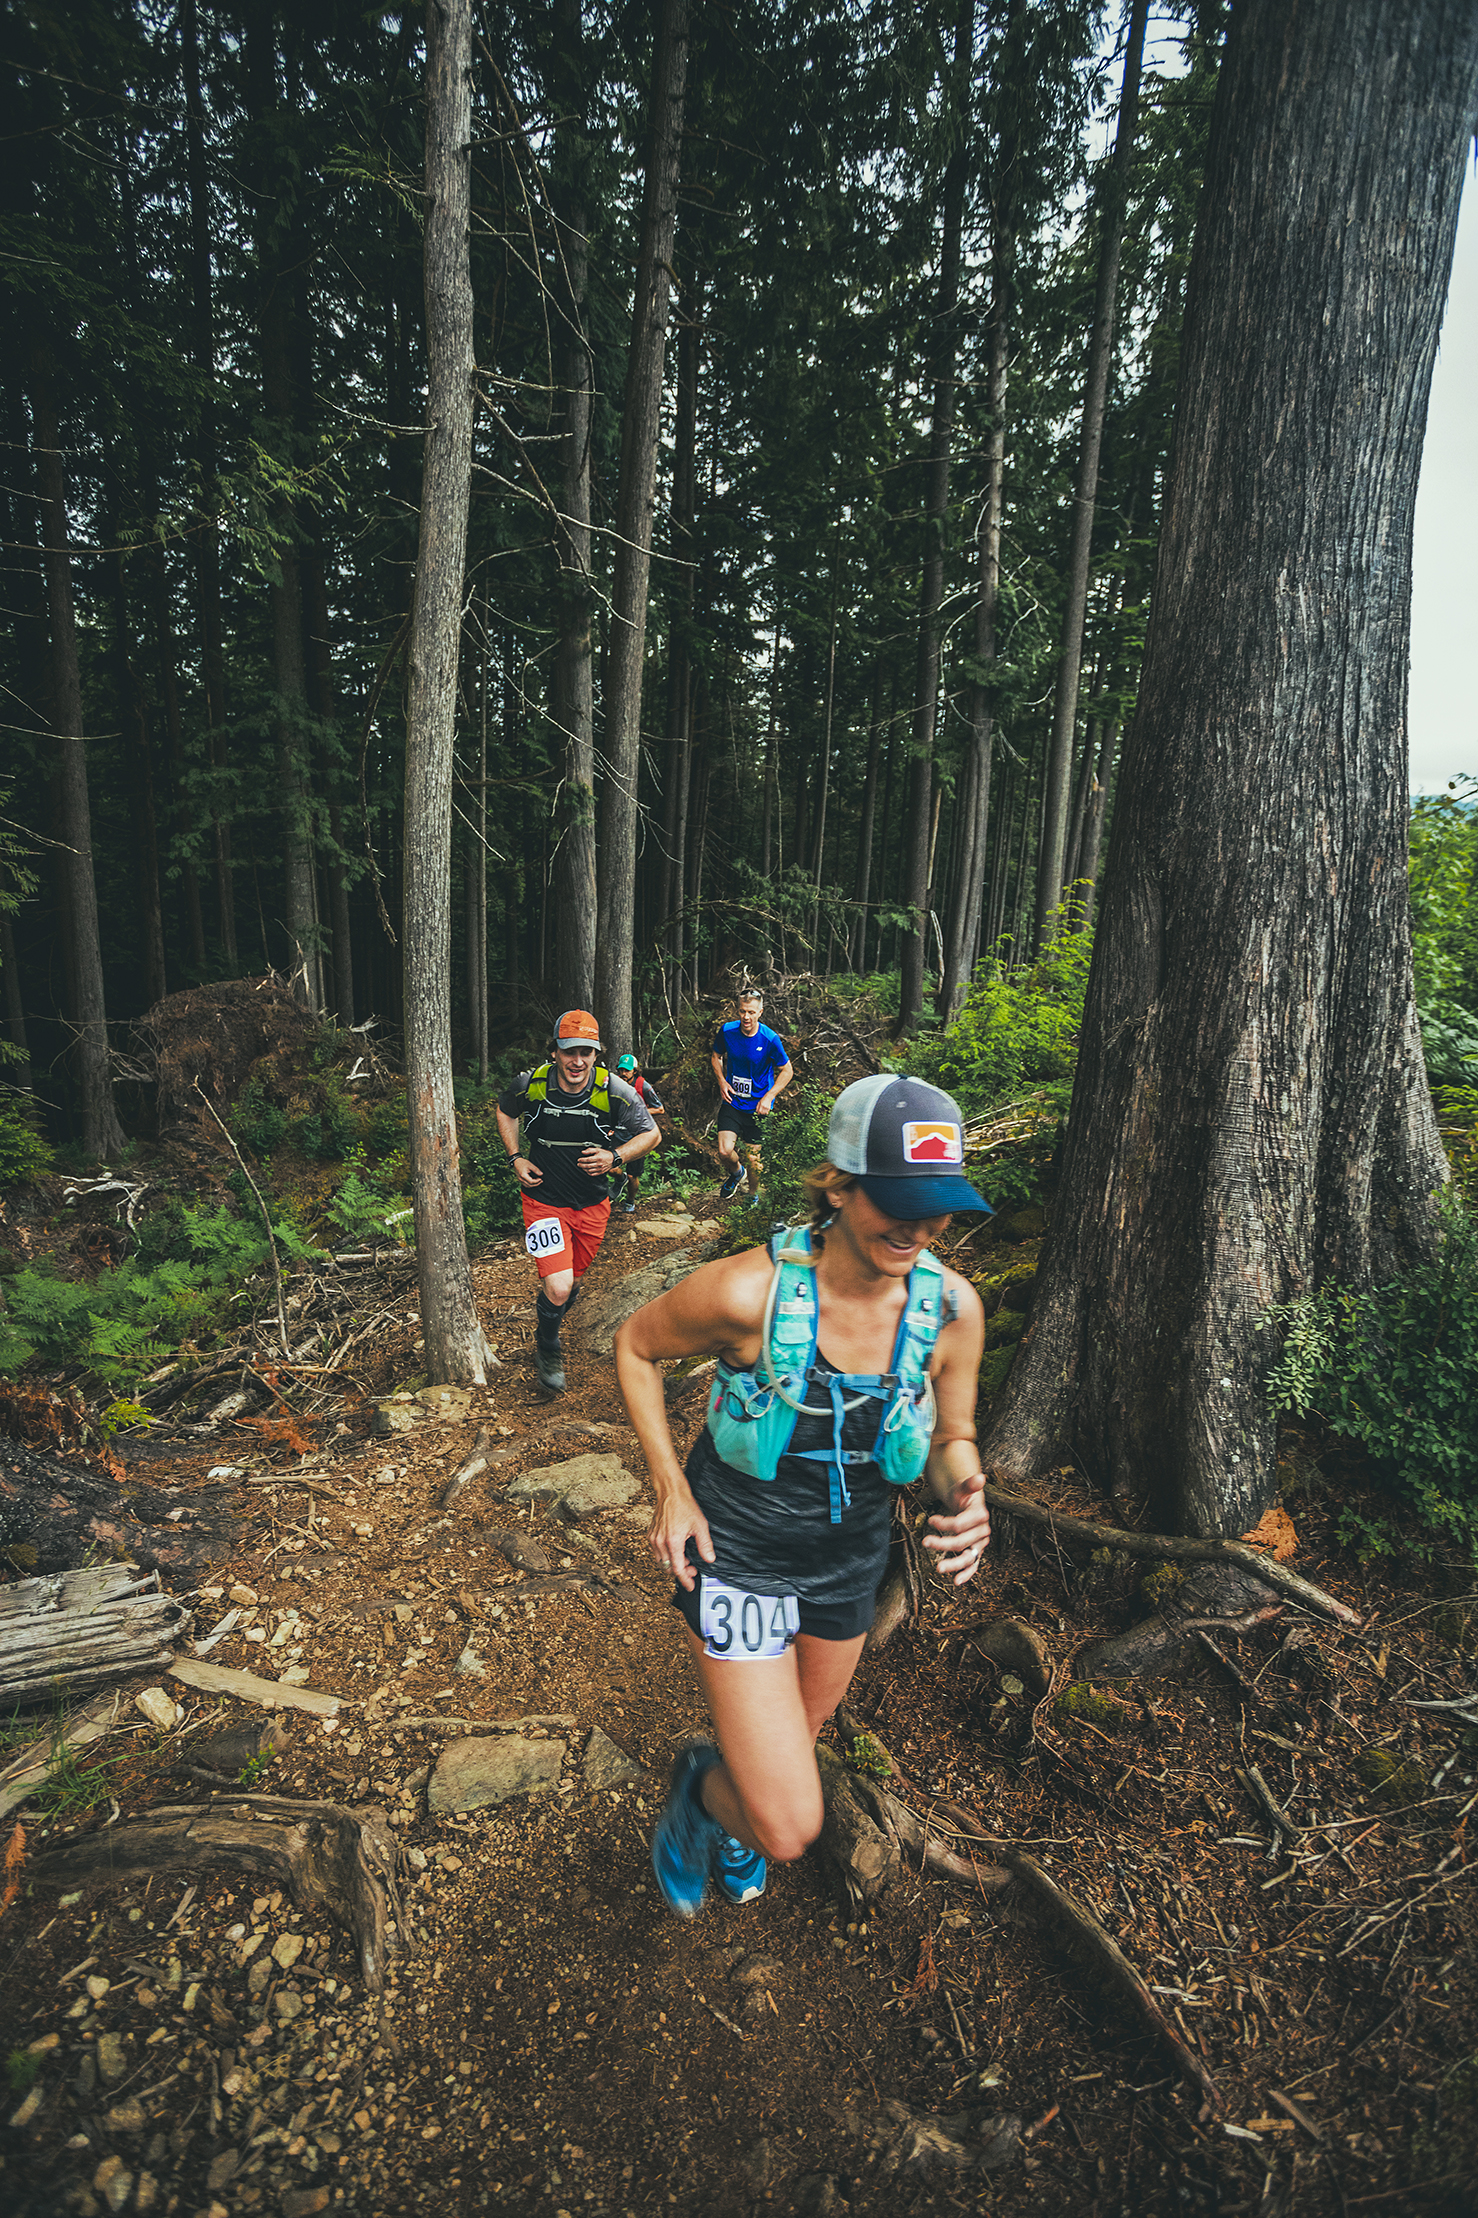 Fraser Valley Trail Races - Bear Mountain - IMG_1487 by Brice Ferre Studio - Vancouver Portrait Adventure and Athlete Photographer.jpg